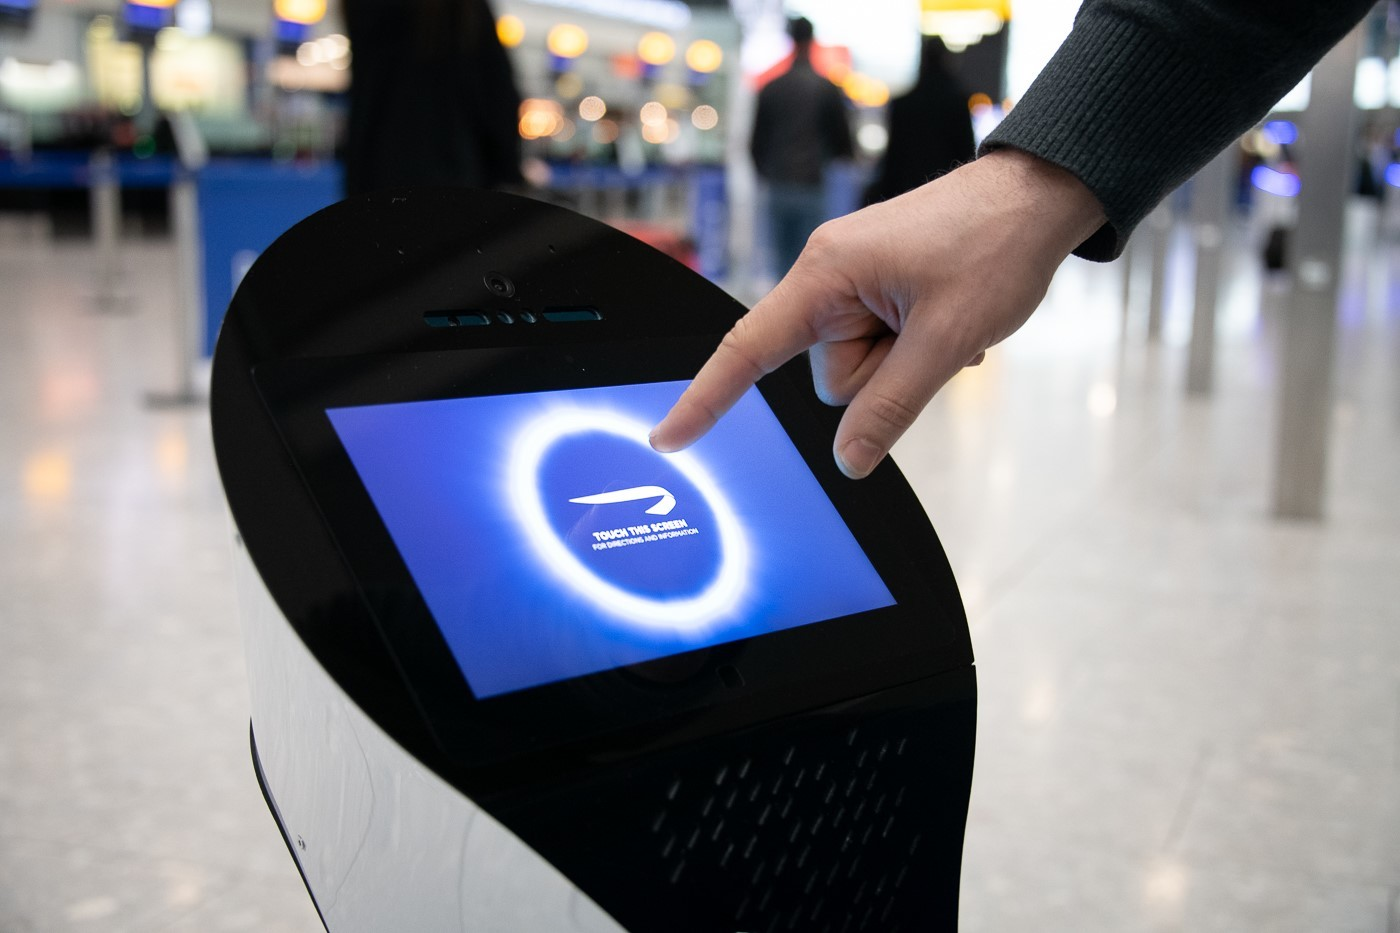 British Airways begynder næste år for alvor at teste robotter til hjælpe passagererne i Terminal 5 i London Heathrow, BA's største passagerfacilitet. Pressefoto: British Airways.